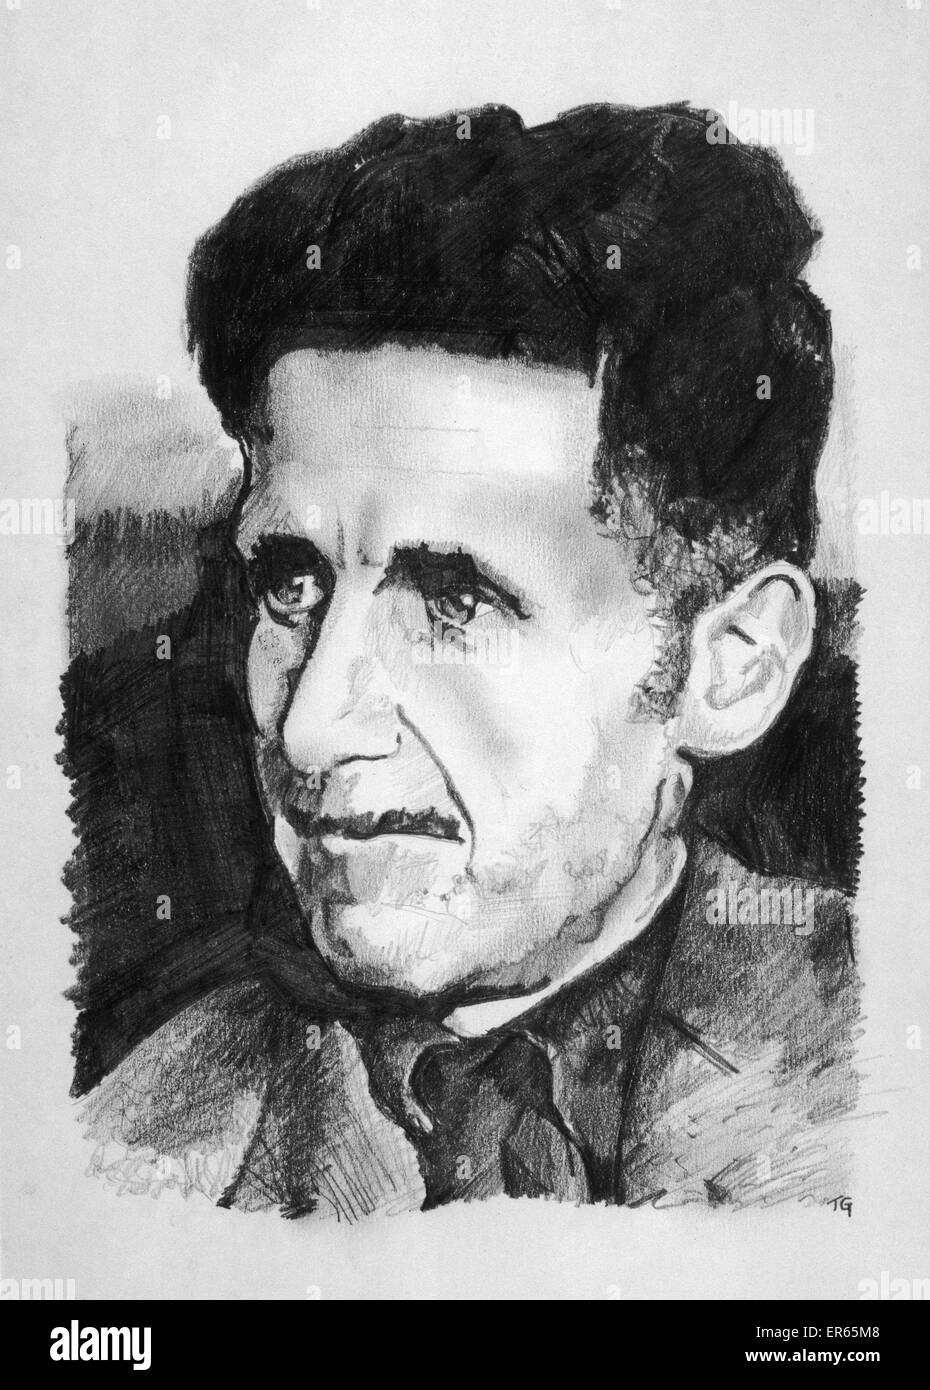 a biography of english writer george orwell George orwell (named eric arthur blair at birth), is a british writer, author of numerous essays, journalistic articles and one of the most controversial people of his time.